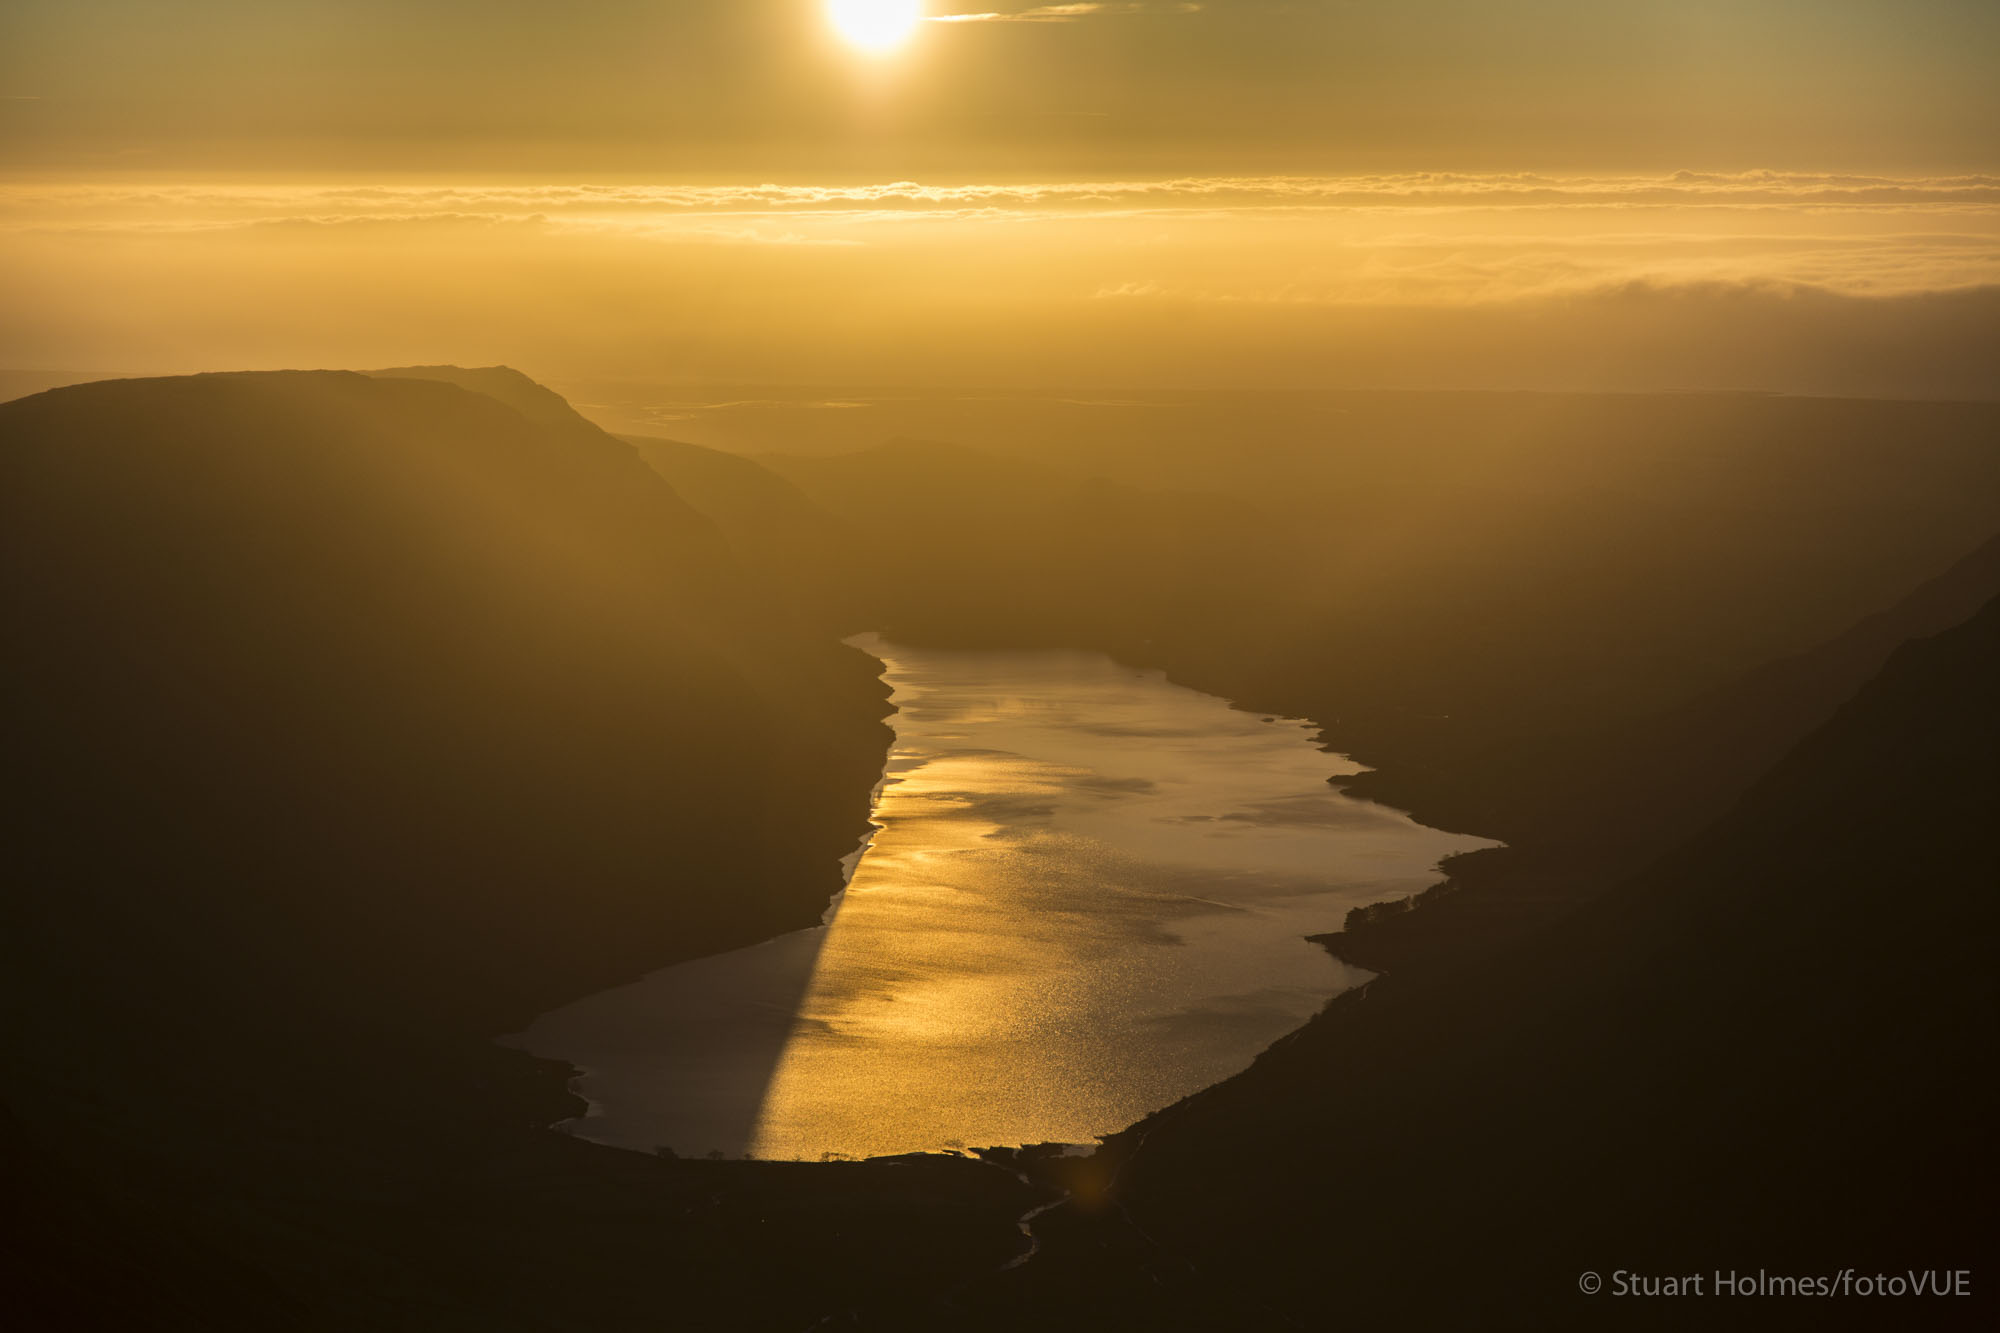 Wastwater gold from below the summit of Great Gable. Canon 5D Mk III, 24-105mm at 90mm, ISO 100, 1/2000s at f/4. © Stuart Holmes.